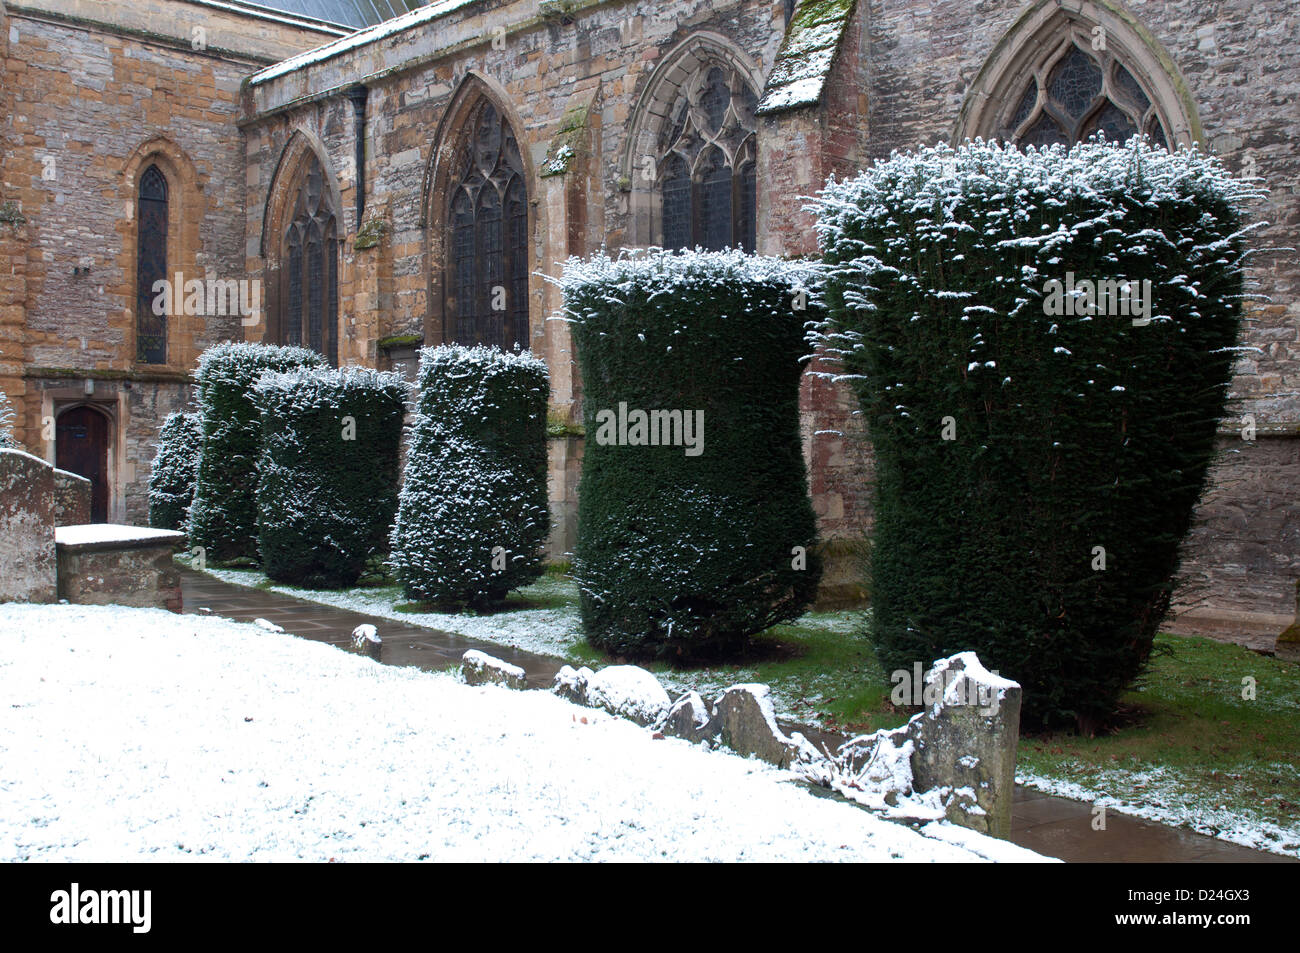 Yew trees in Holy Trinity churchyard in winter, Stratford-upon-Avon, UK - Stock Image